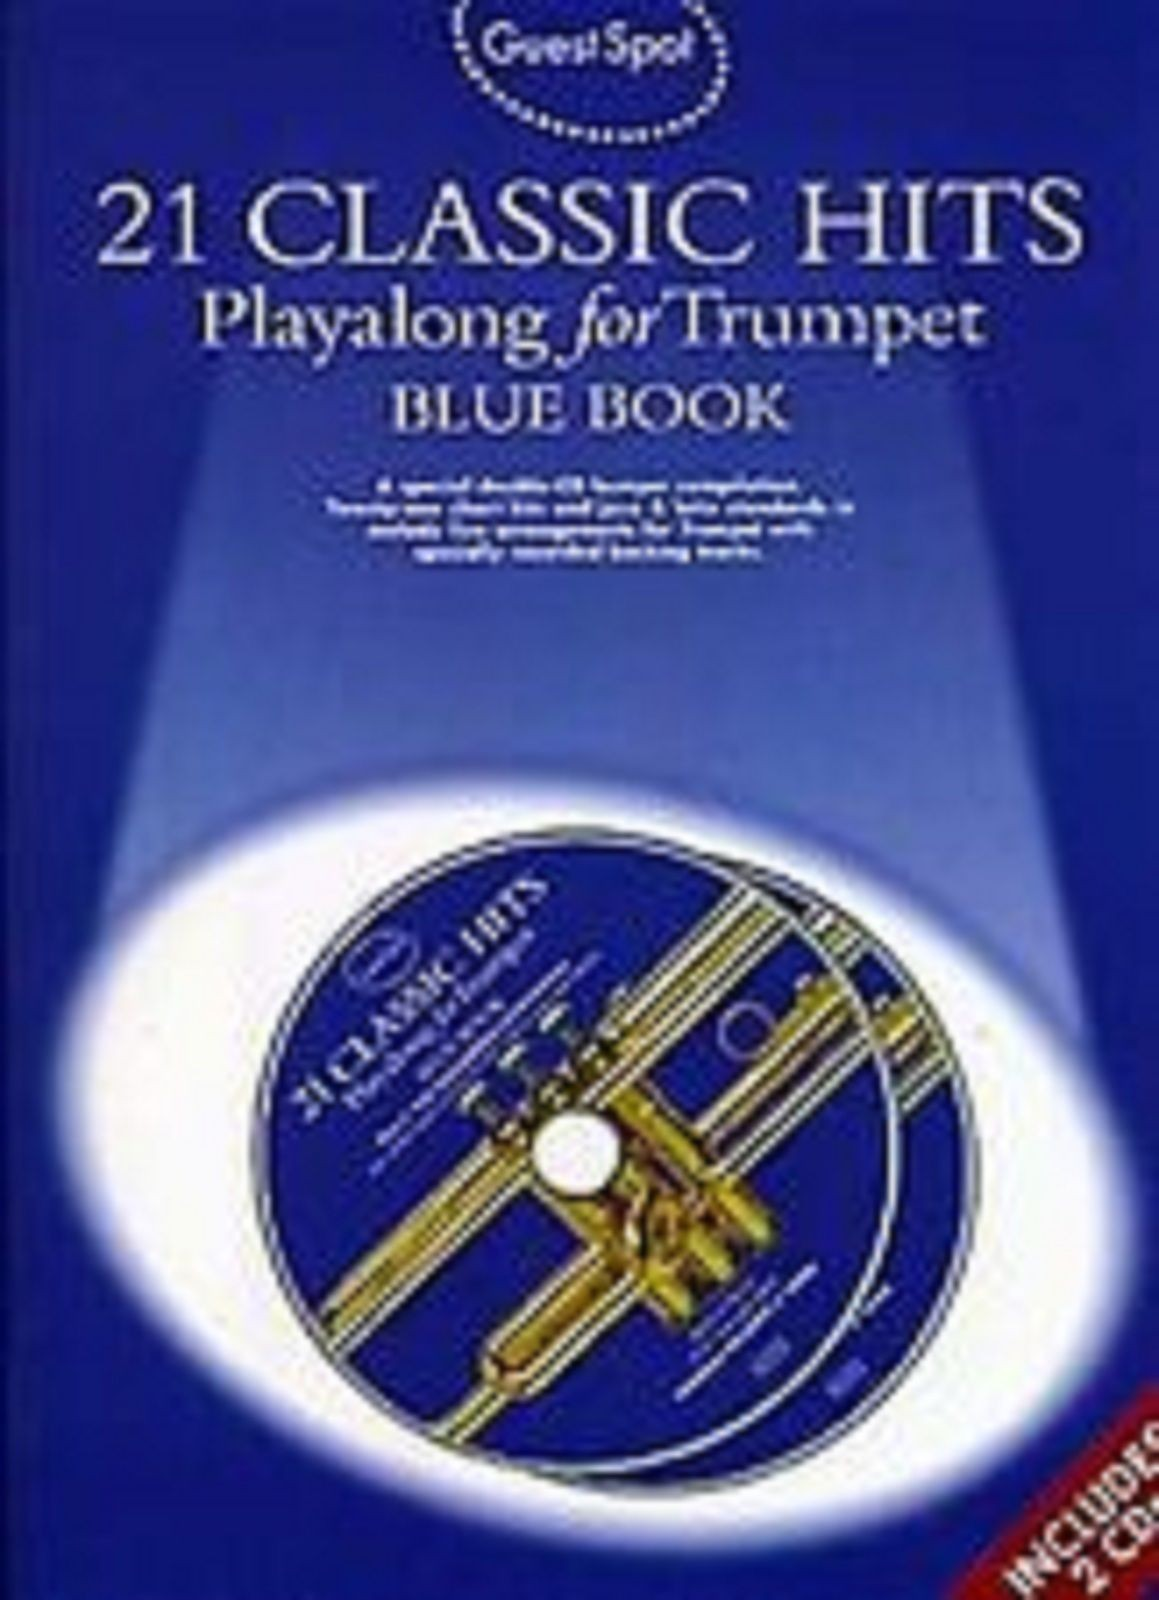 Guest Spot 21 Classic Hits Trumpet Play Along Blue Book CD Sheet Music S152